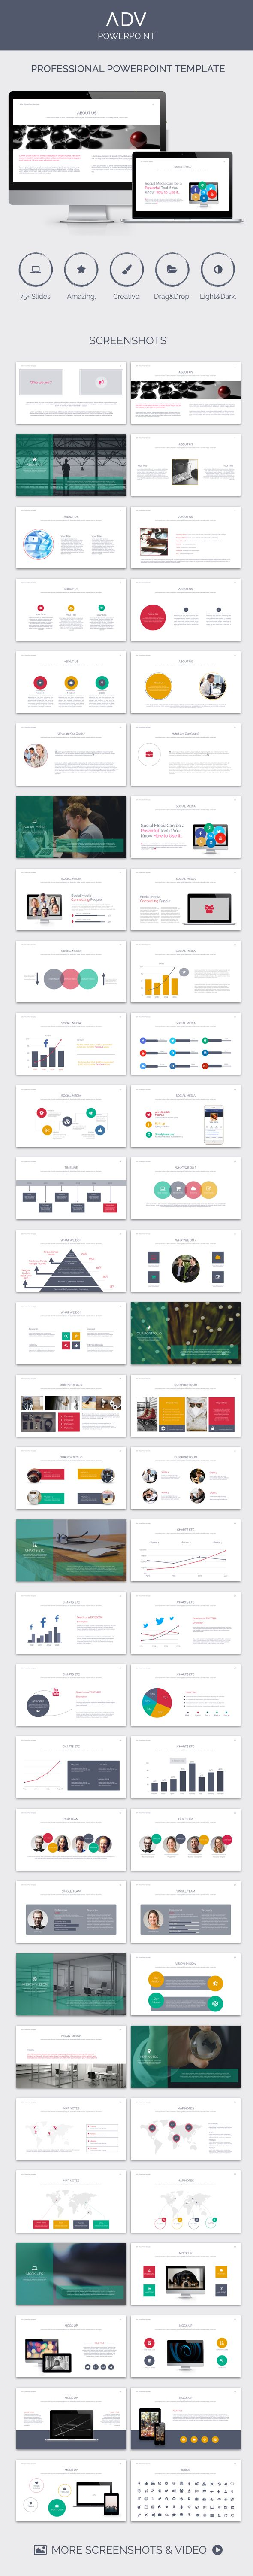 ADV PowerPoint Template. Download here: http://graphicriver.net/item/adv-powerpoint-template/15488601?ref=ksioks